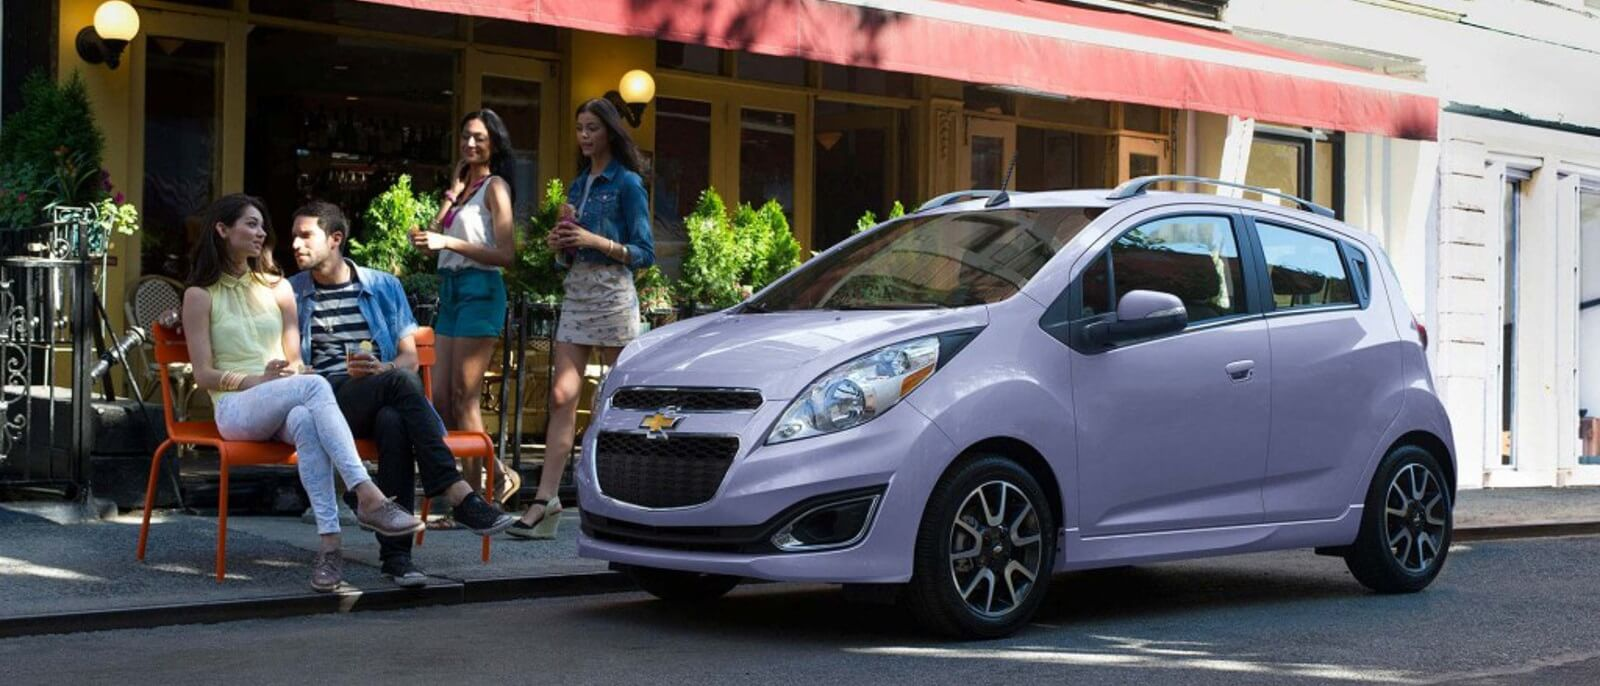 2015 Chevrolet Spark Interior; 2015 Chevrolet Spark In Front Of Cafe ...